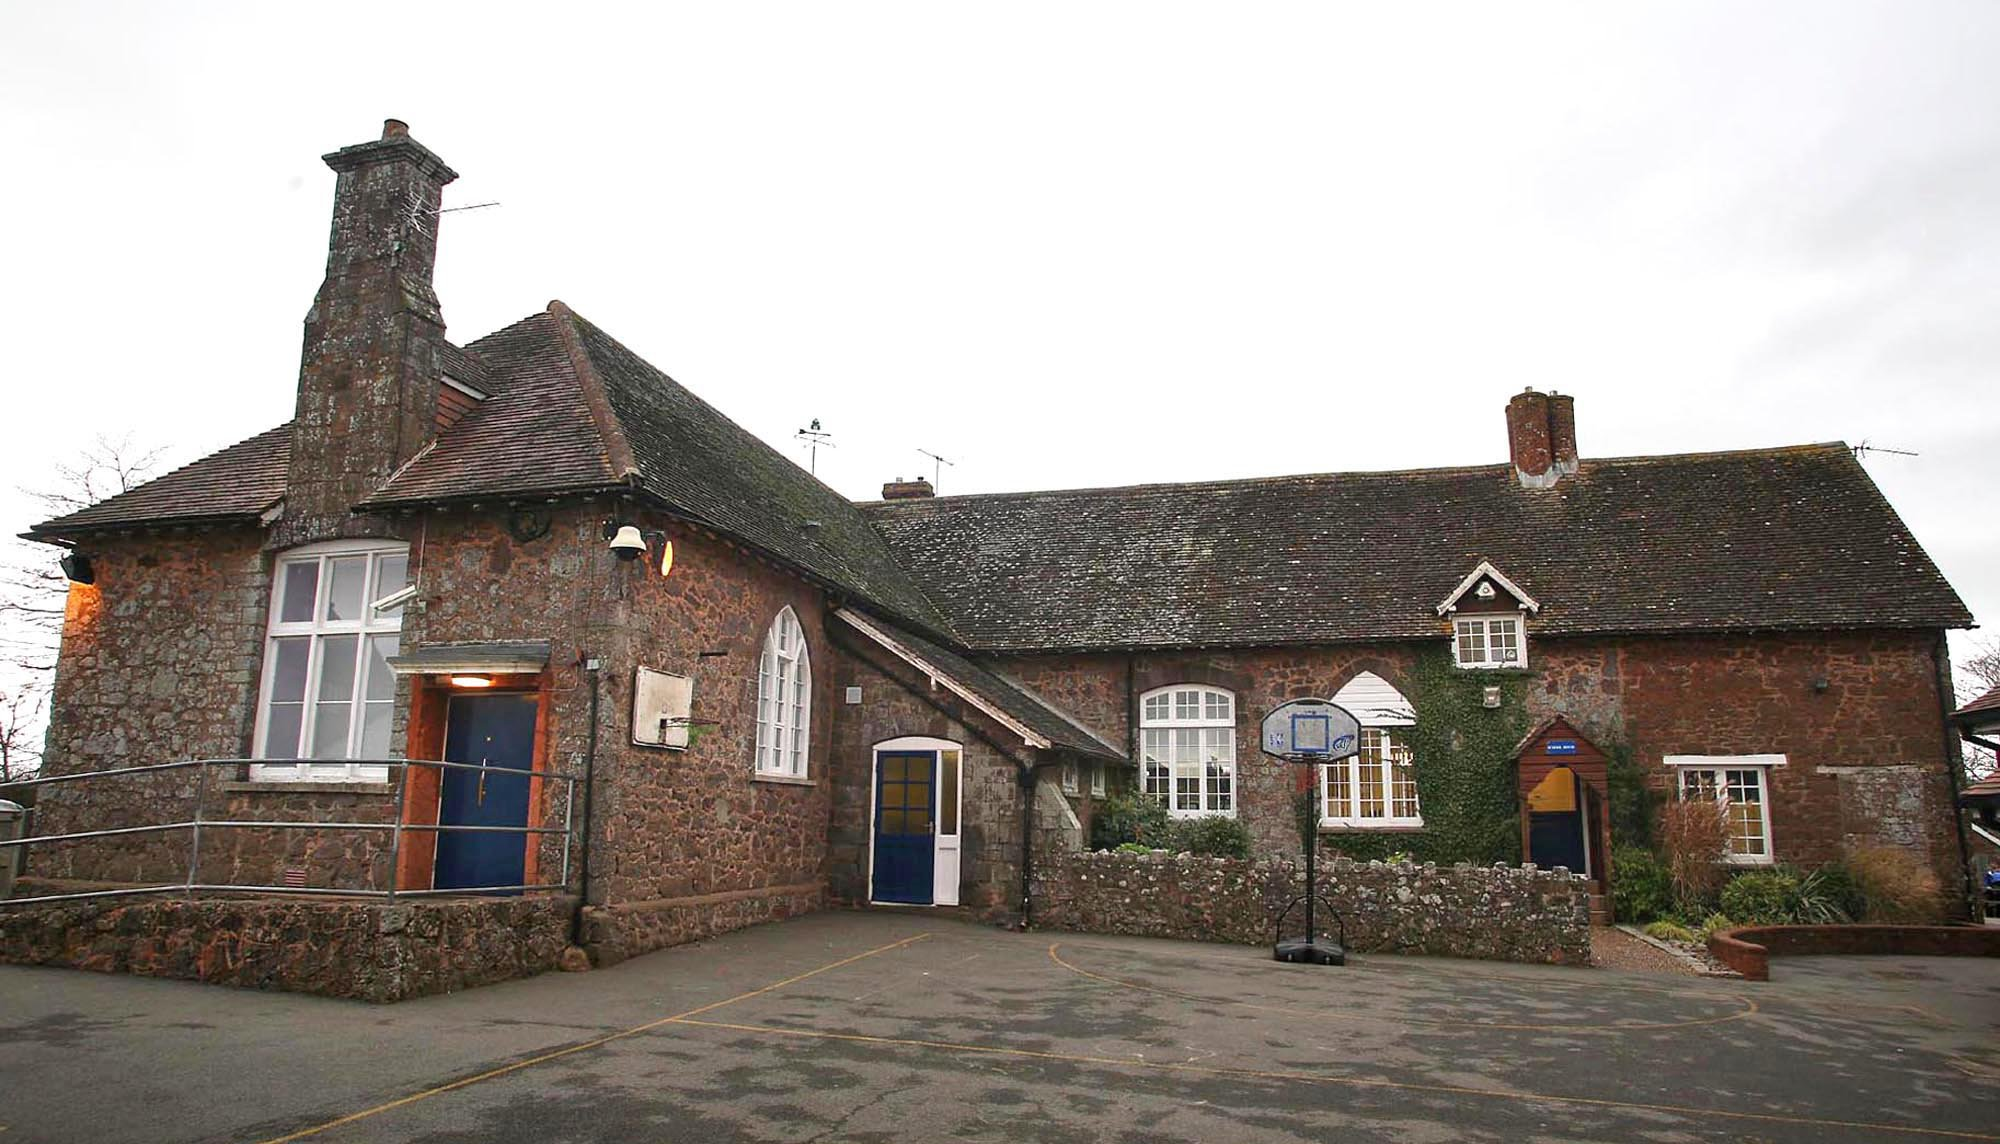 """PIC: APEX 13/09/2018 A Norovirus outbreak in two schools has seen 45 pupils sent home with the severe vomiting bug. Westclyst and Broadclyst Primary School in Devon saw the bug spread through its pupils with parents claiming children were leaving school carrying sick buckets. The two schools currently share the same site at Broadclyst near Exeter. One parent said it was """"like something from a horror film"""" when she went to collect her four-year-old son at the end of the day. Westclyst and Broadclyst Schools are working with Public Health England to manage the outbreak. It's understood more schools in the area have also been affected. Norovirus, also known as the winter vomiting bug, is the most common stomach bug in the UK, affecting people of all ages. This file picture shows a view of Broadclyst Primary School. SEE STORY BY APEX NEWS - 01392 823144 ---------------------------------------------------- APEX NEWS AND PICTURES NEWS DESK: 01392 823144 PICTURE DESK: 01392 823145"""